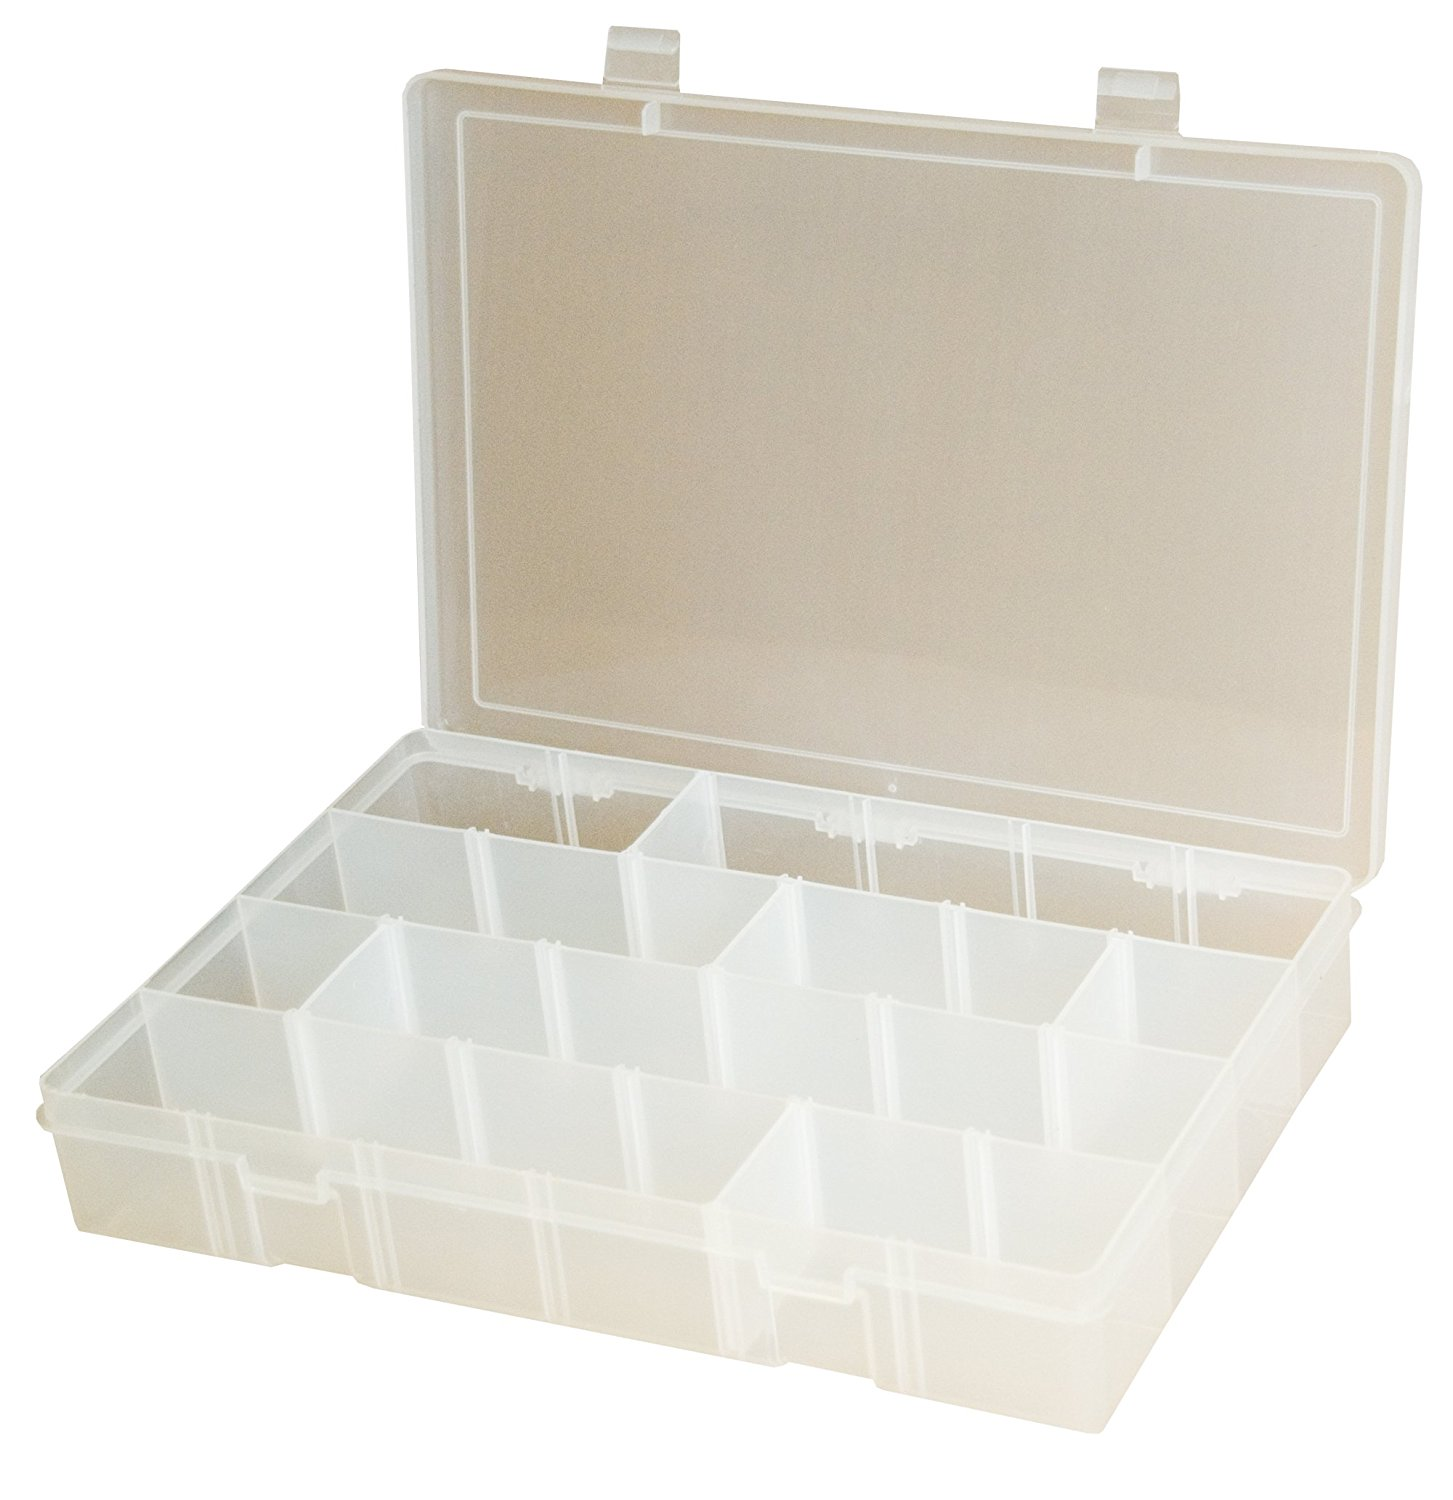 Durham MFG 215-95-D571 Compartment Box 13-3//8 In W 9-1//4 In D